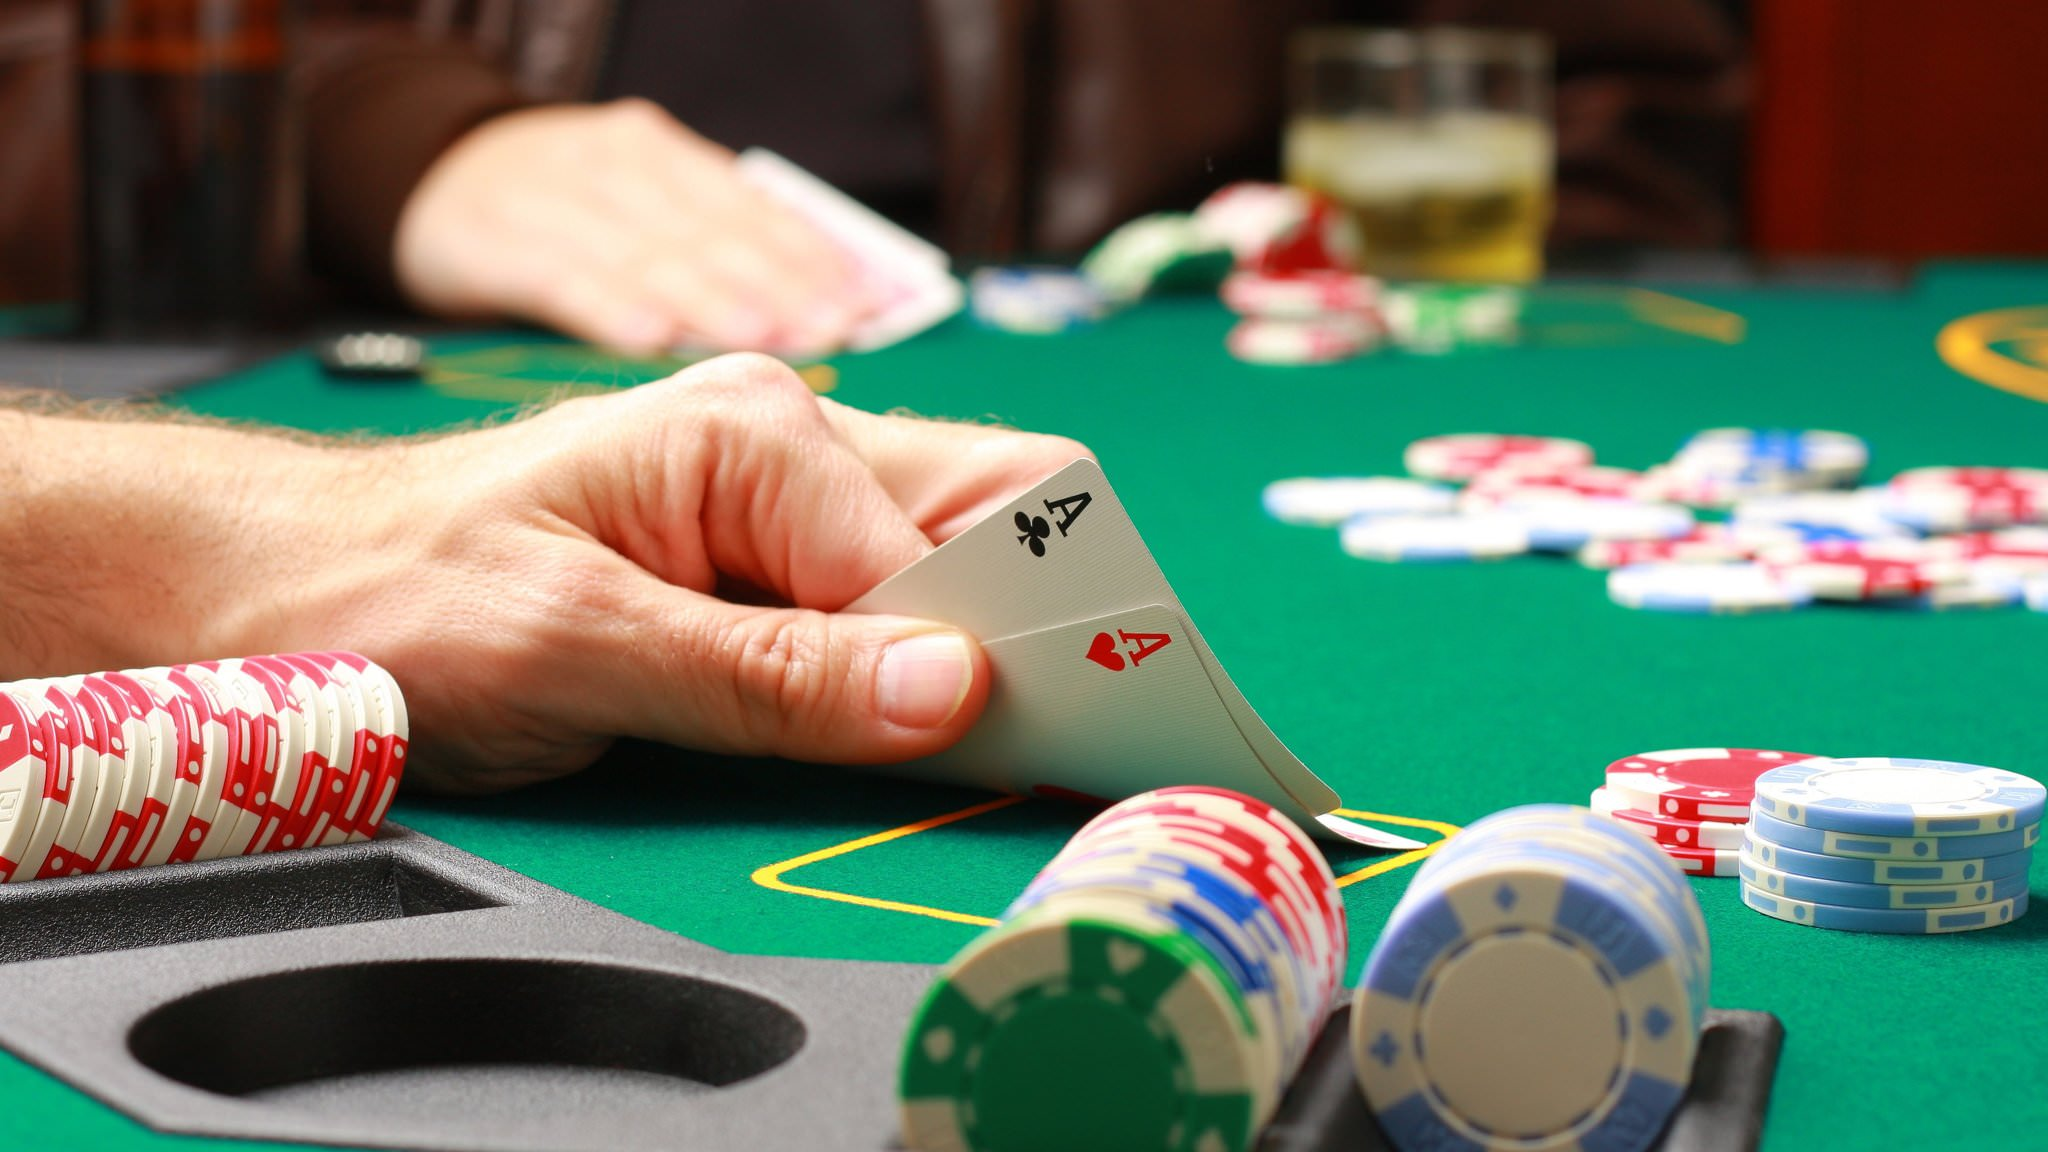 Play Video Poker Online For Real Money From United States Video Poker Casino Sites